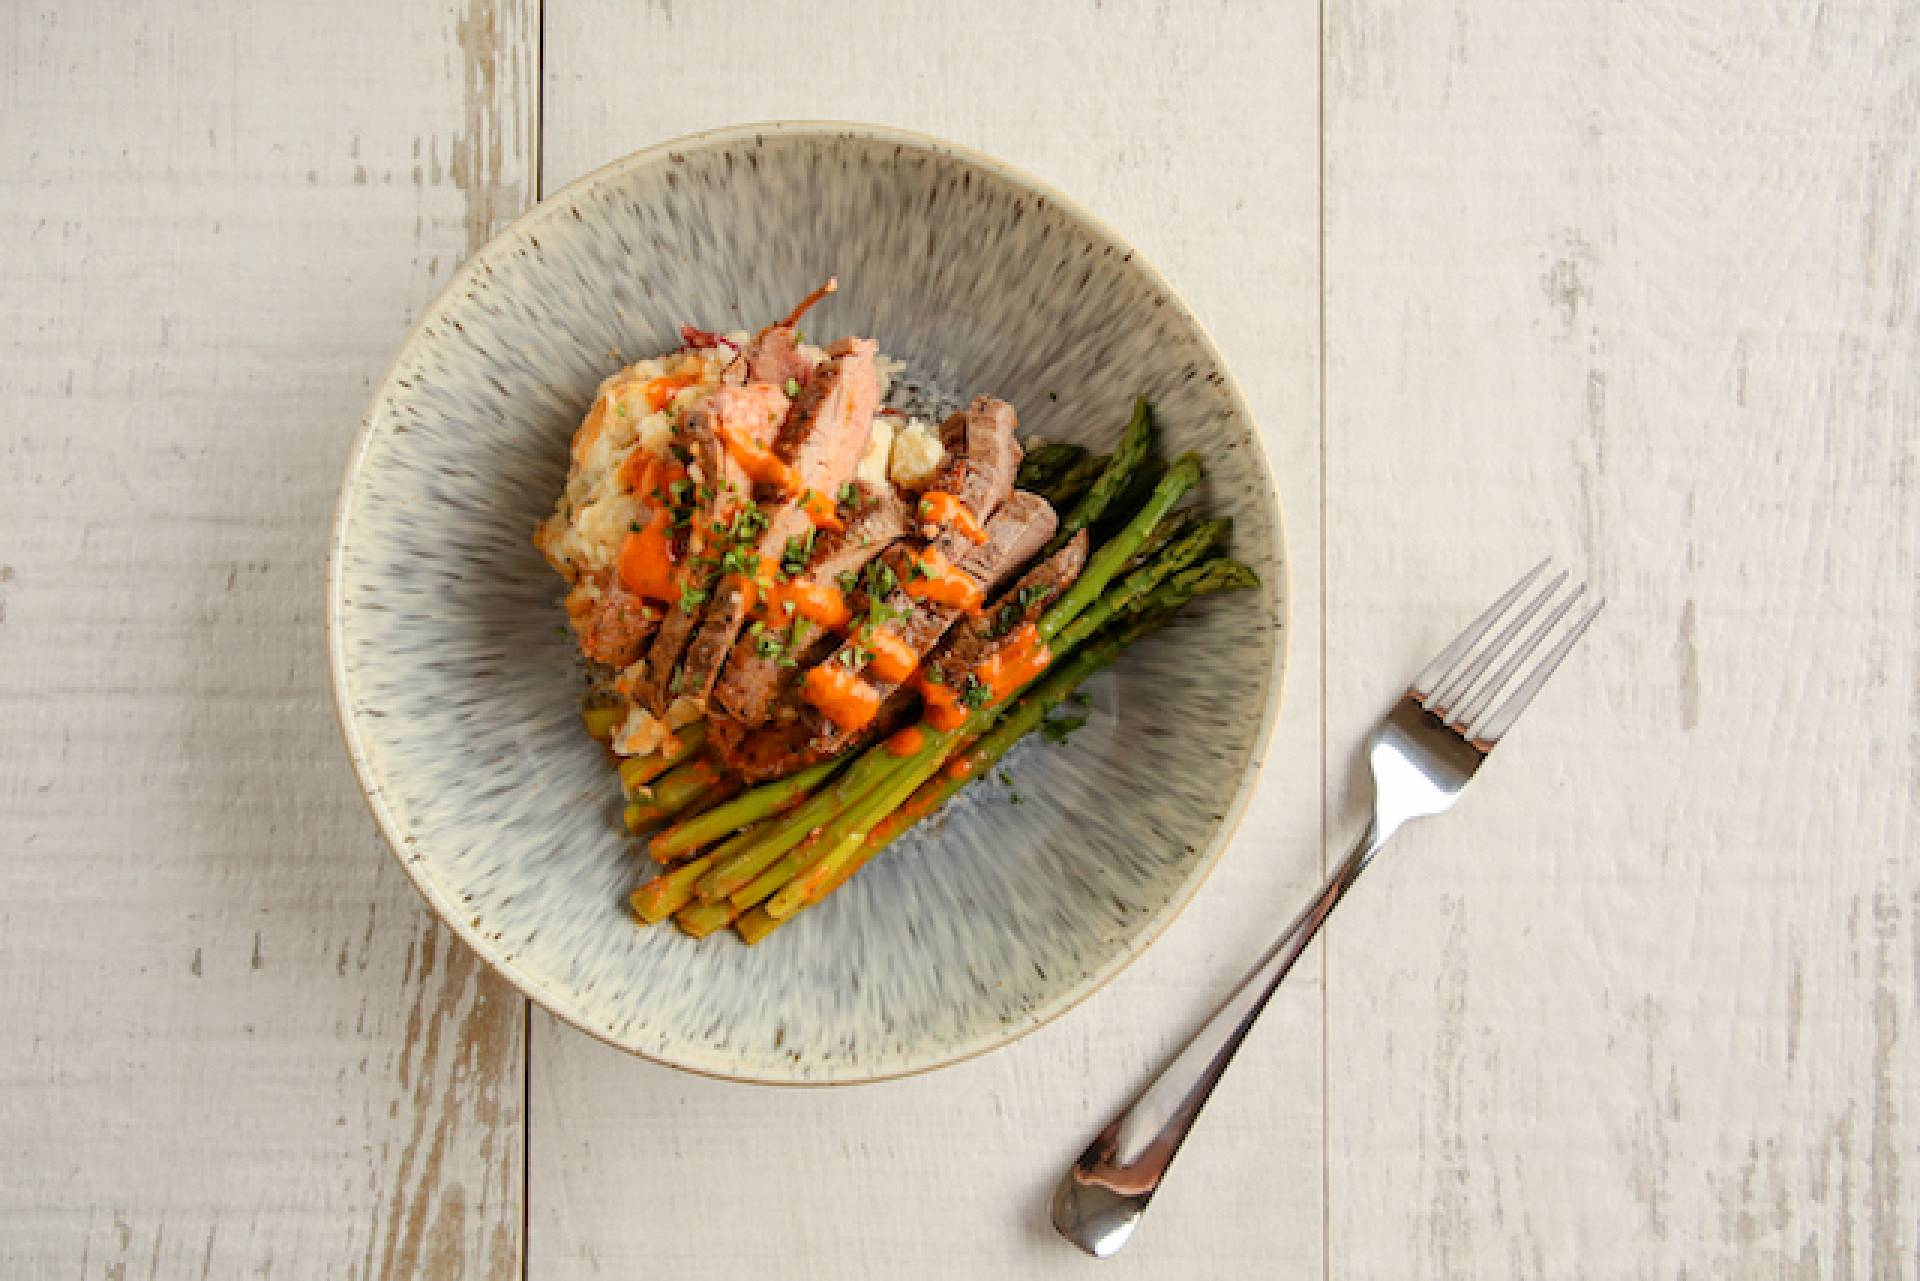 Flank with Asparagus and Mashed Red Potato